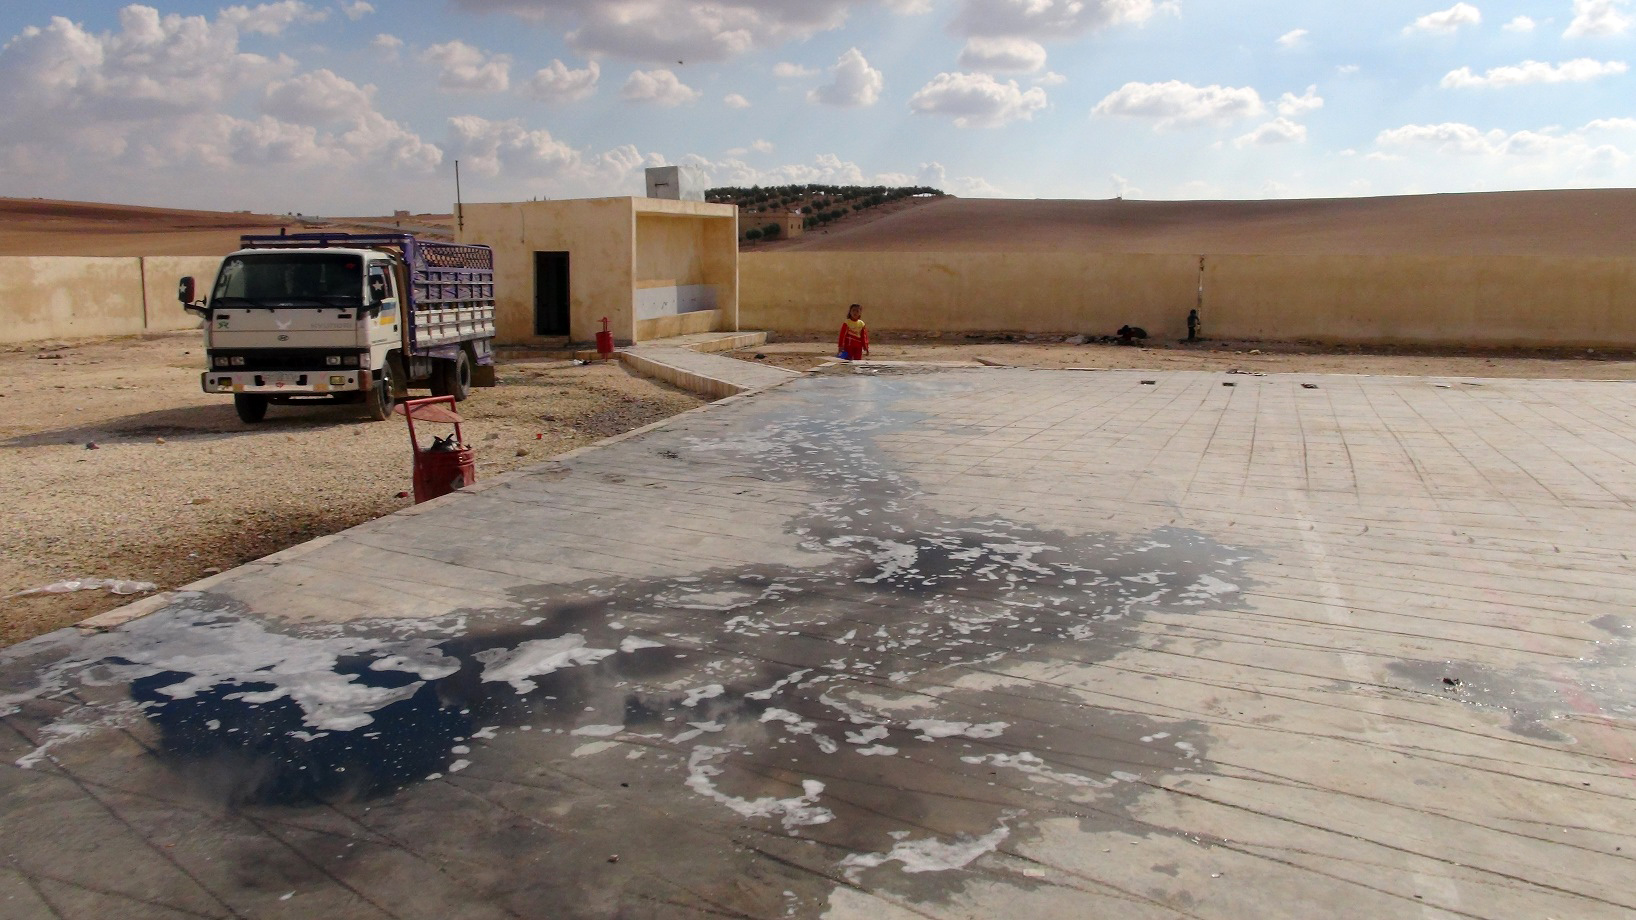 A sanitation facility in a shelter for IDPs in north-eastern Syria, with sewage water leaking into the ground. Sewerage systems have all but broken down during the conflict